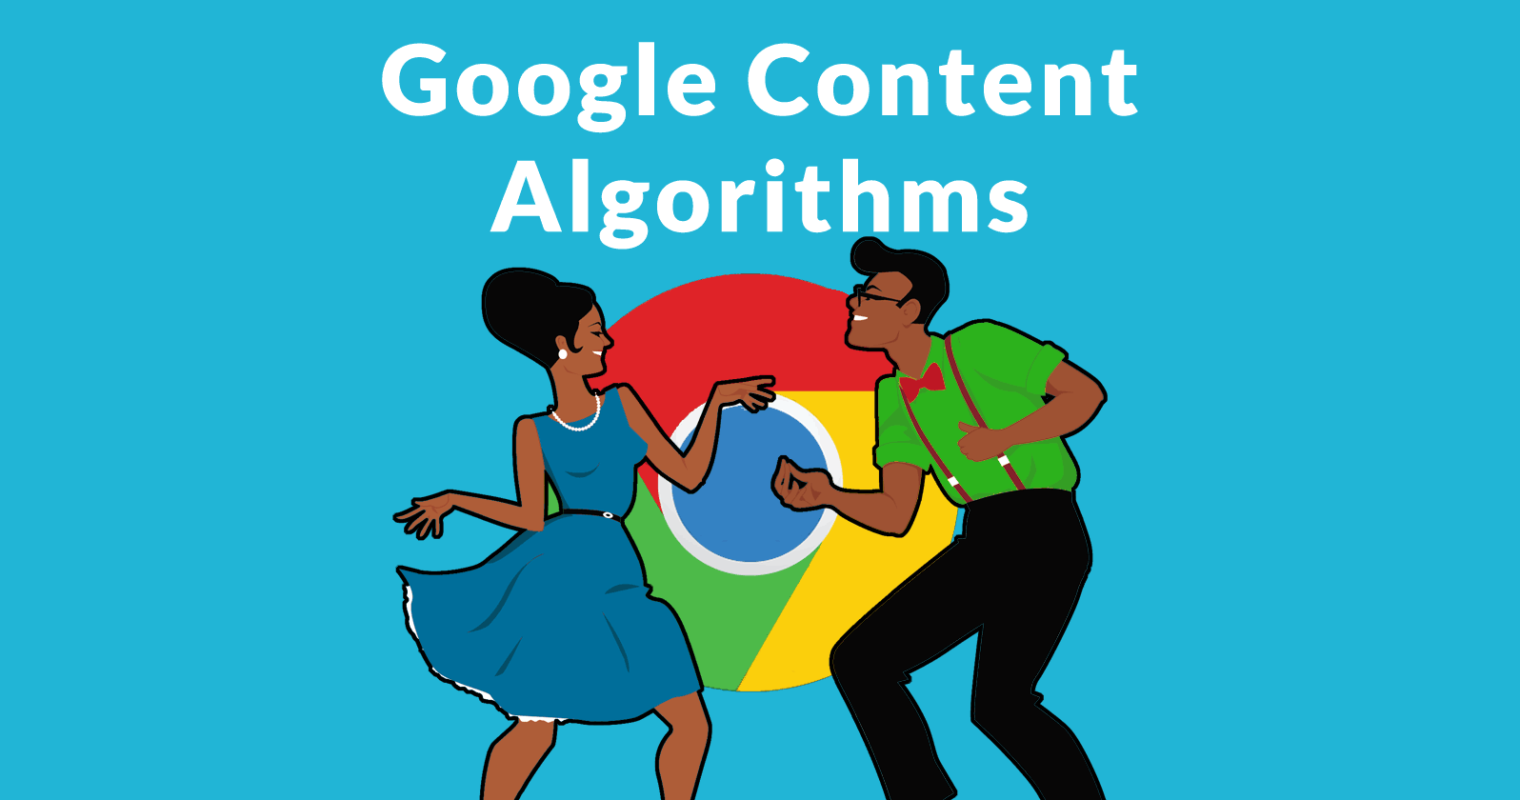 Google Content Algorithms and Ranking Effects